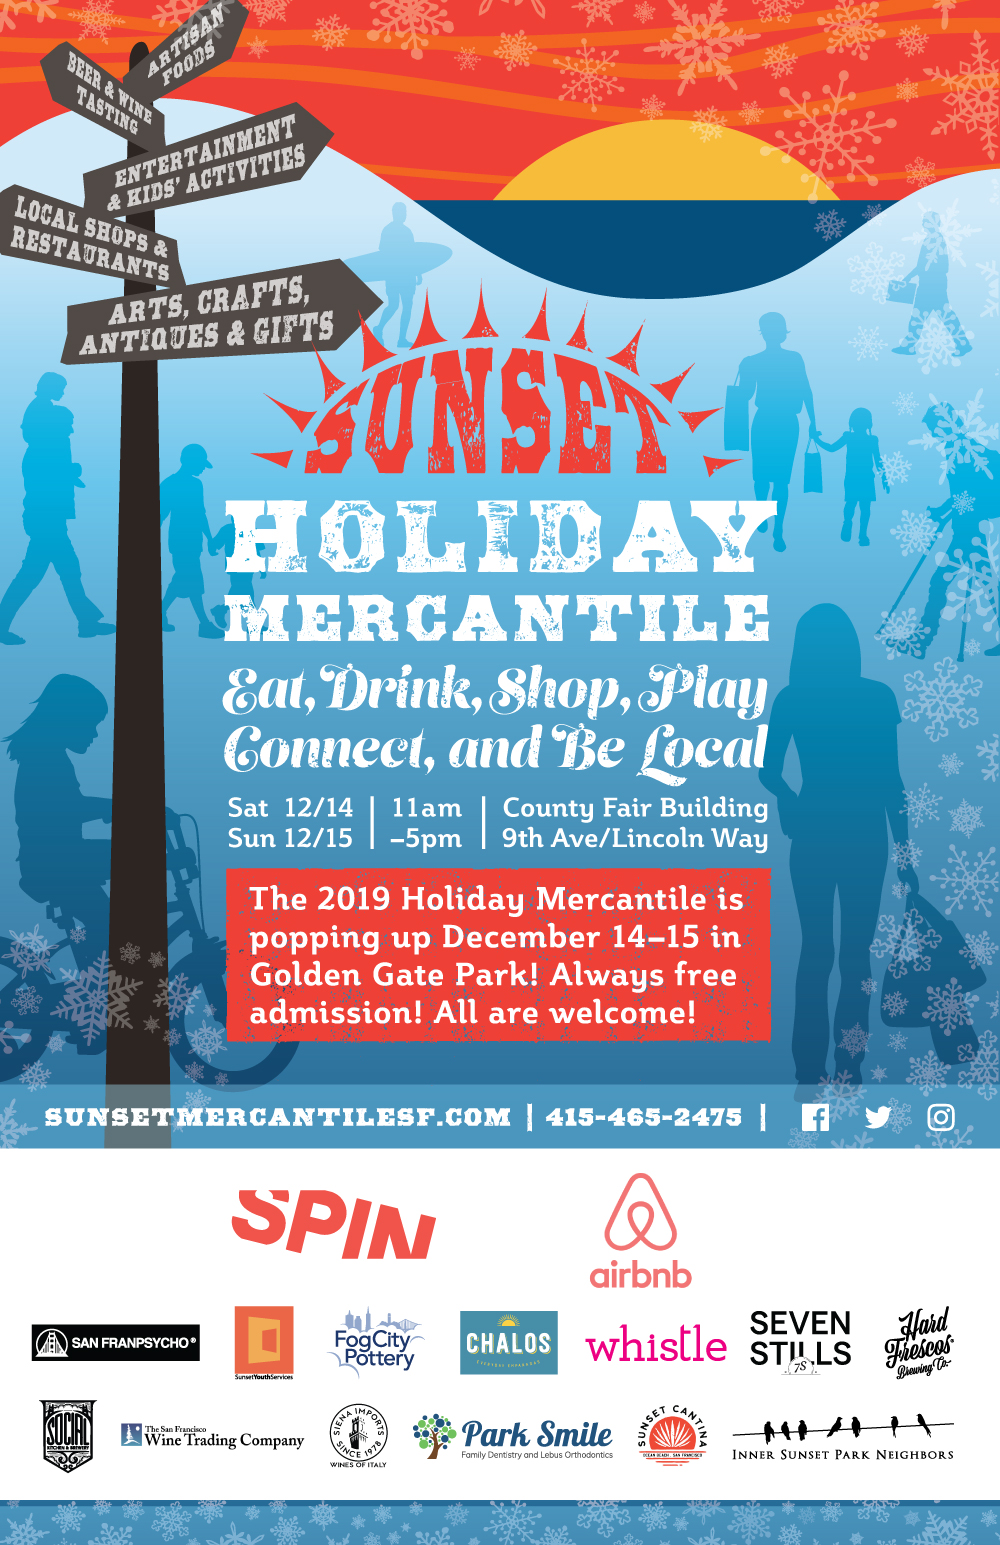 SUNSET HOLIDAY MERCANTILE: Eat, Drink, Shop, Play, Connect, and Be Local - Saturday 12/14 & Sunday 12/15, 11am–5pm, Country Fair Building, 9th Ave/Lincoln in Golden Gate Park. Free admission! All are welcome! Artisan Foods, Beer & Wine Tasting, Entertainment & Kids' Activities, Local Shops & Restaurants, Arts, Crafts, Antiques & Gifts, sunsetmercantilesf.com, 415-465-2475